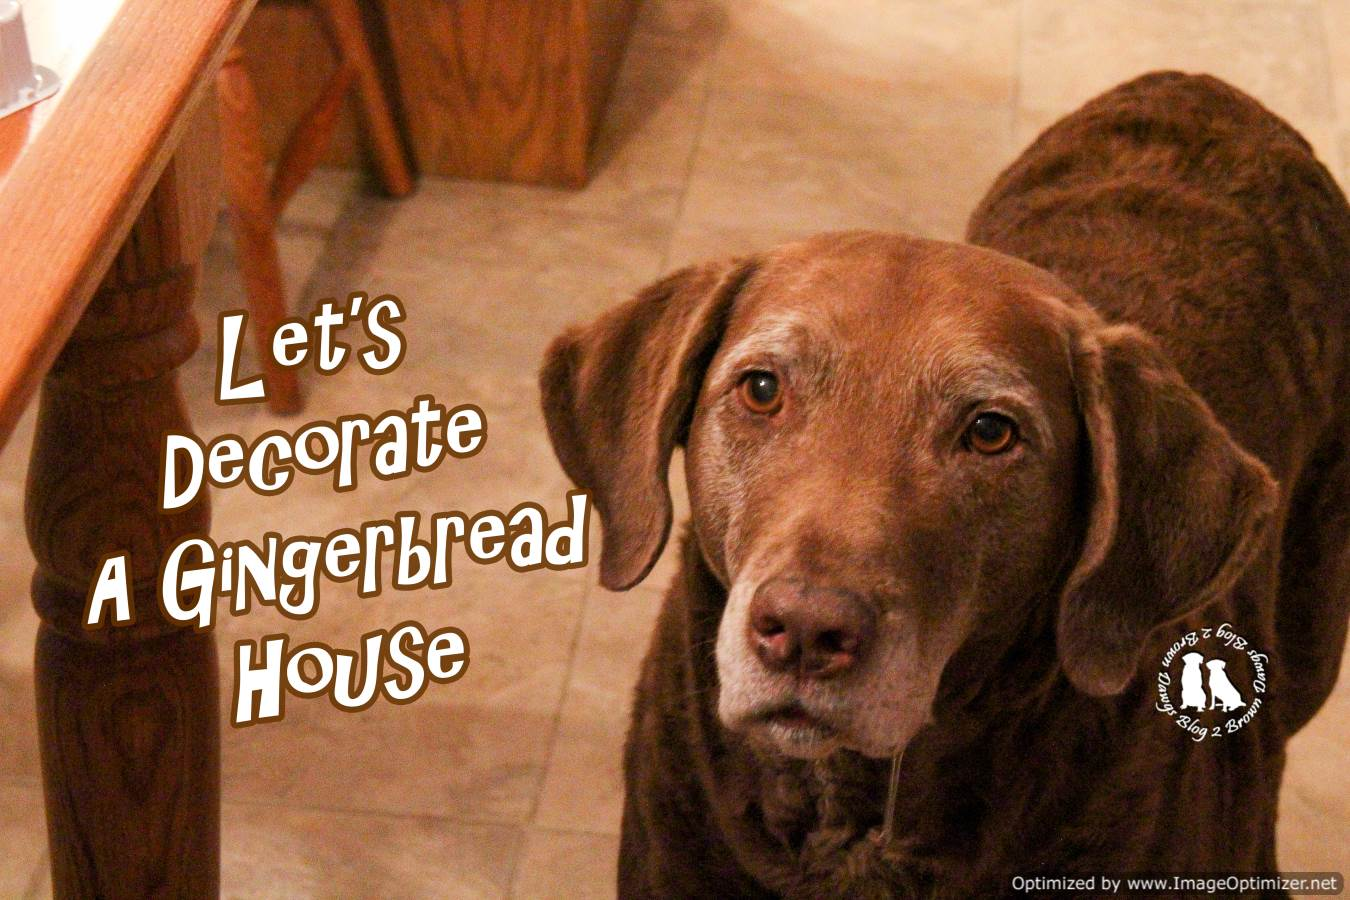 Let's Decorate A Gingerbread House